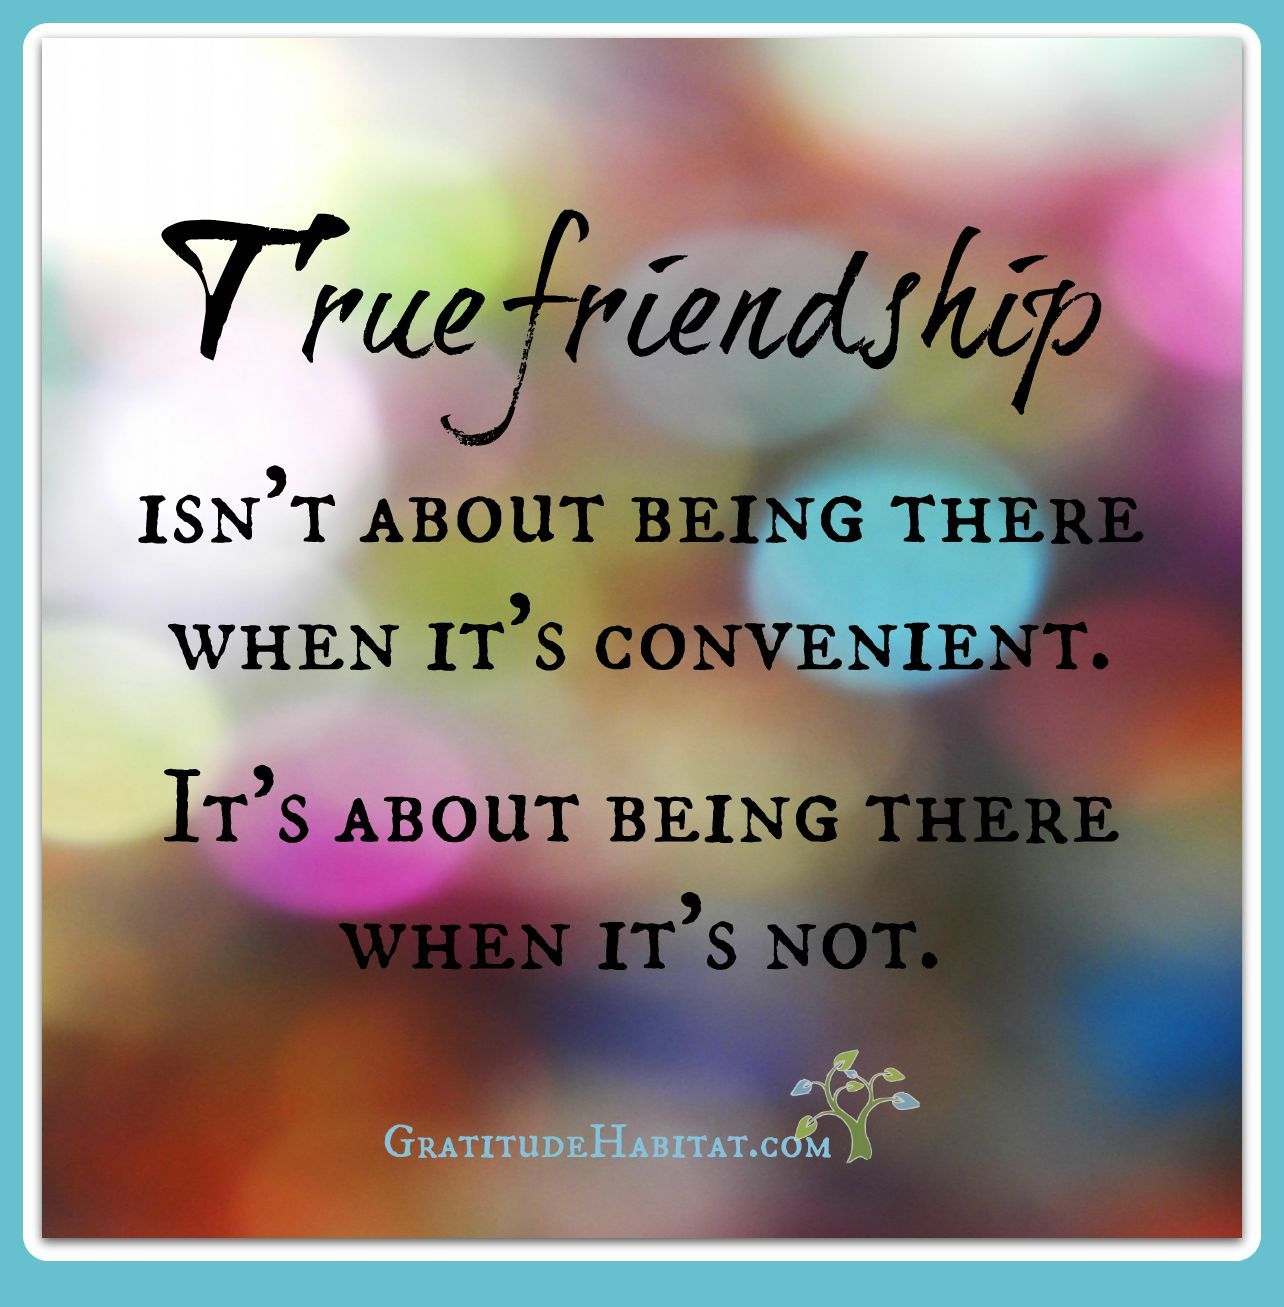 Quote About True Friendship True Friendship Is About Being There When It's Not Convenient